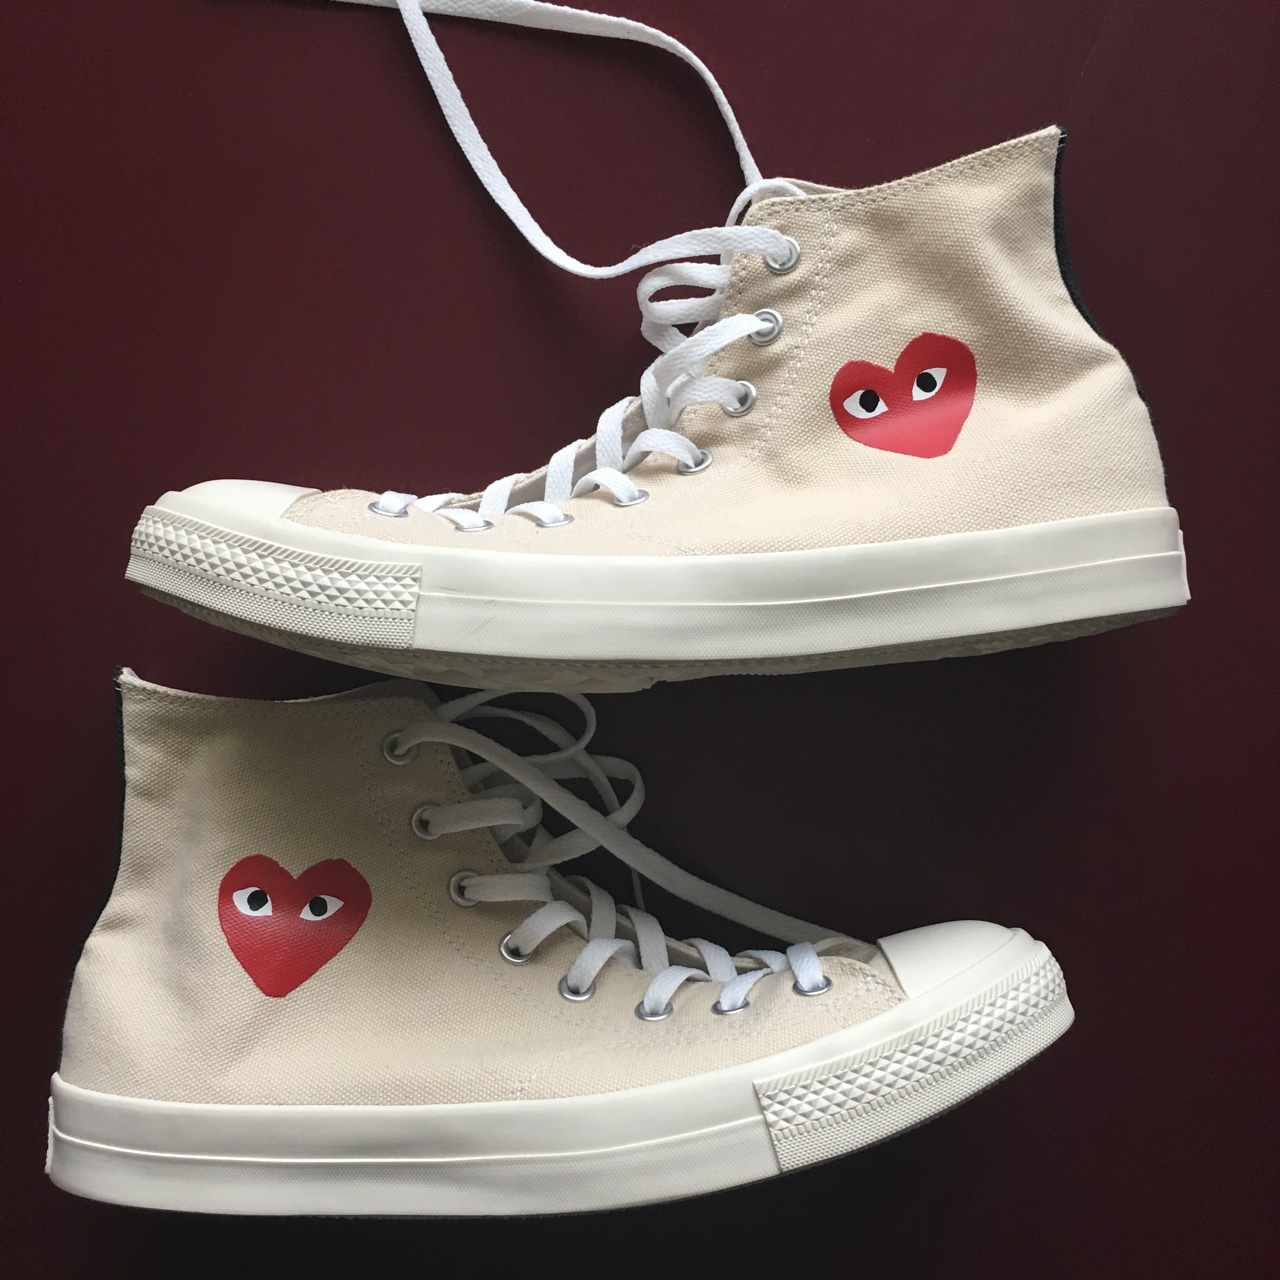 cdg converse old version - 61% OFF